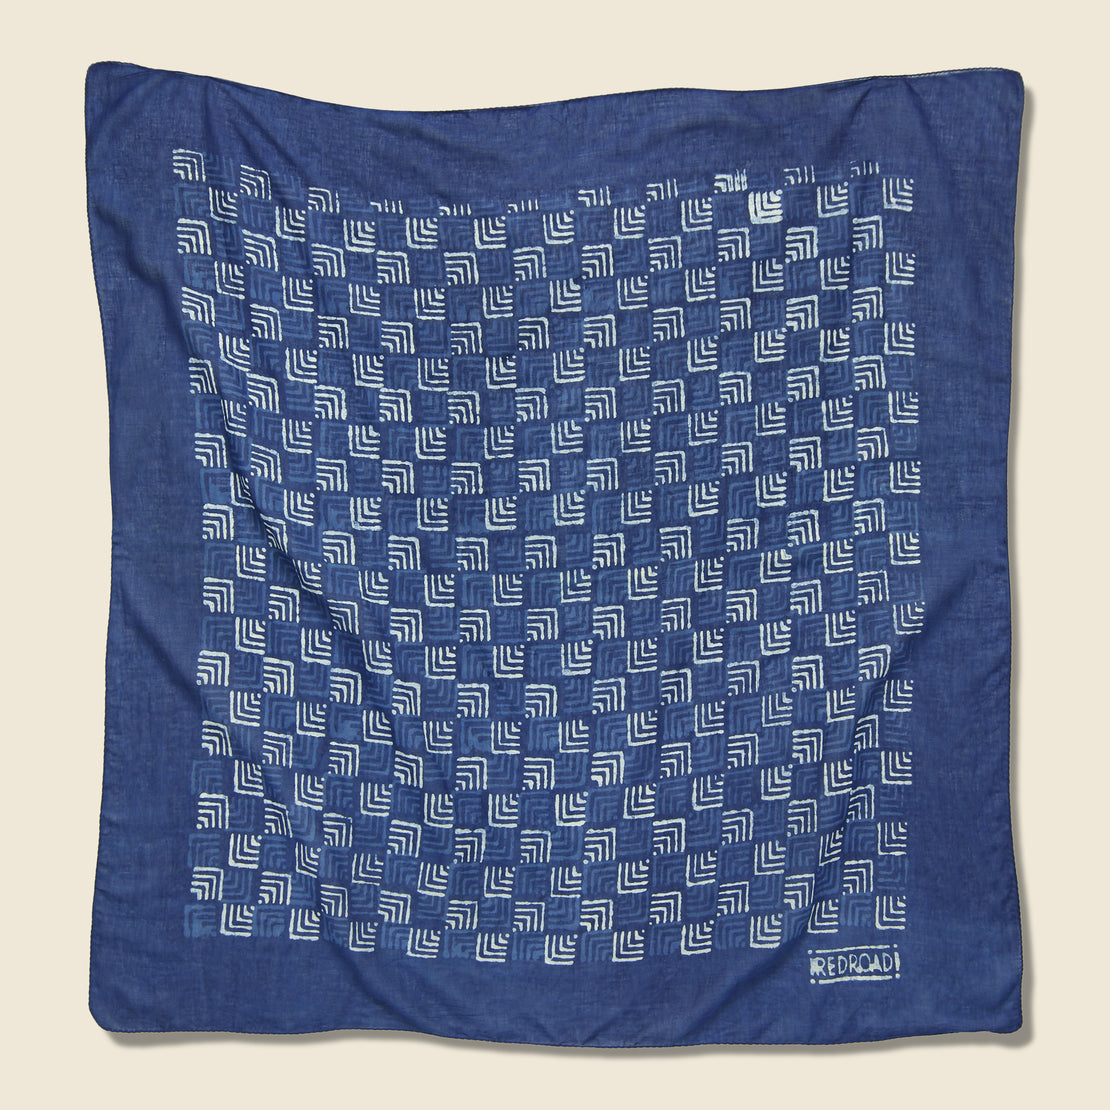 Red Road Double Arrowhead Bandana - Indigo/White